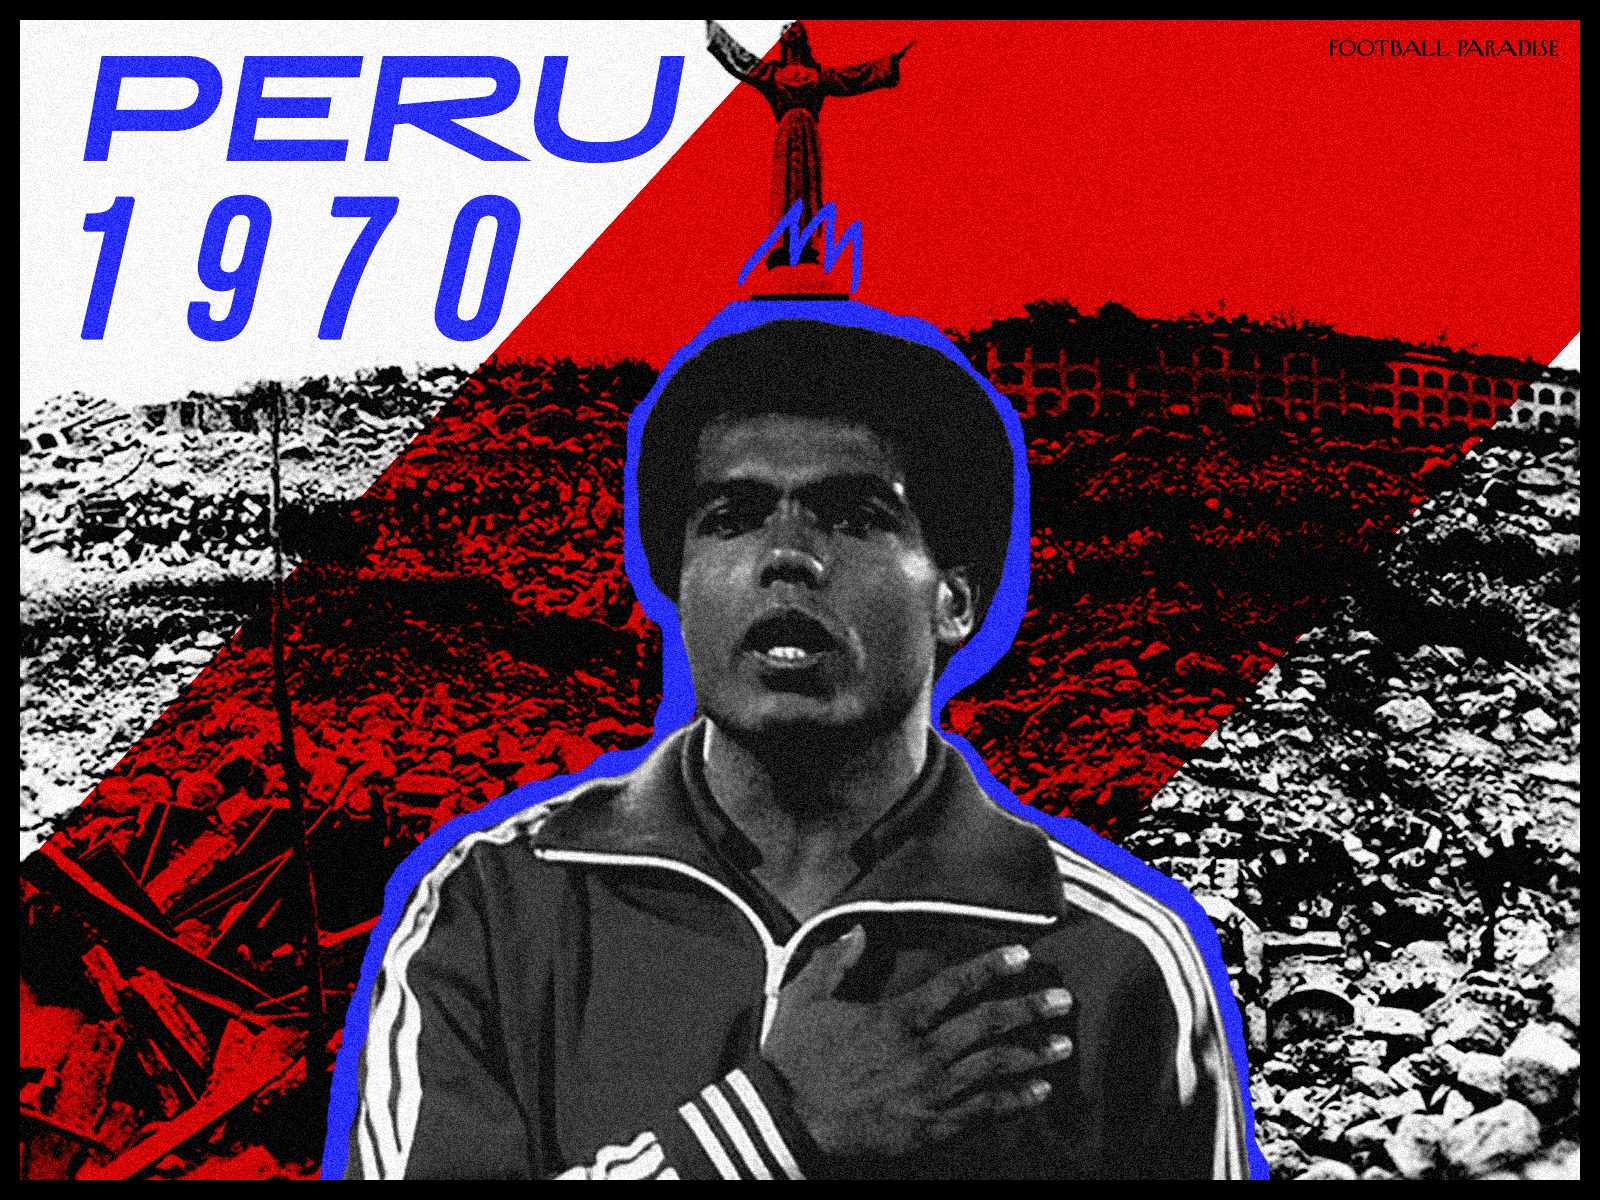 The Class of 1970: Peru and Teofilo Cubillas Against the Ancash Earthquake